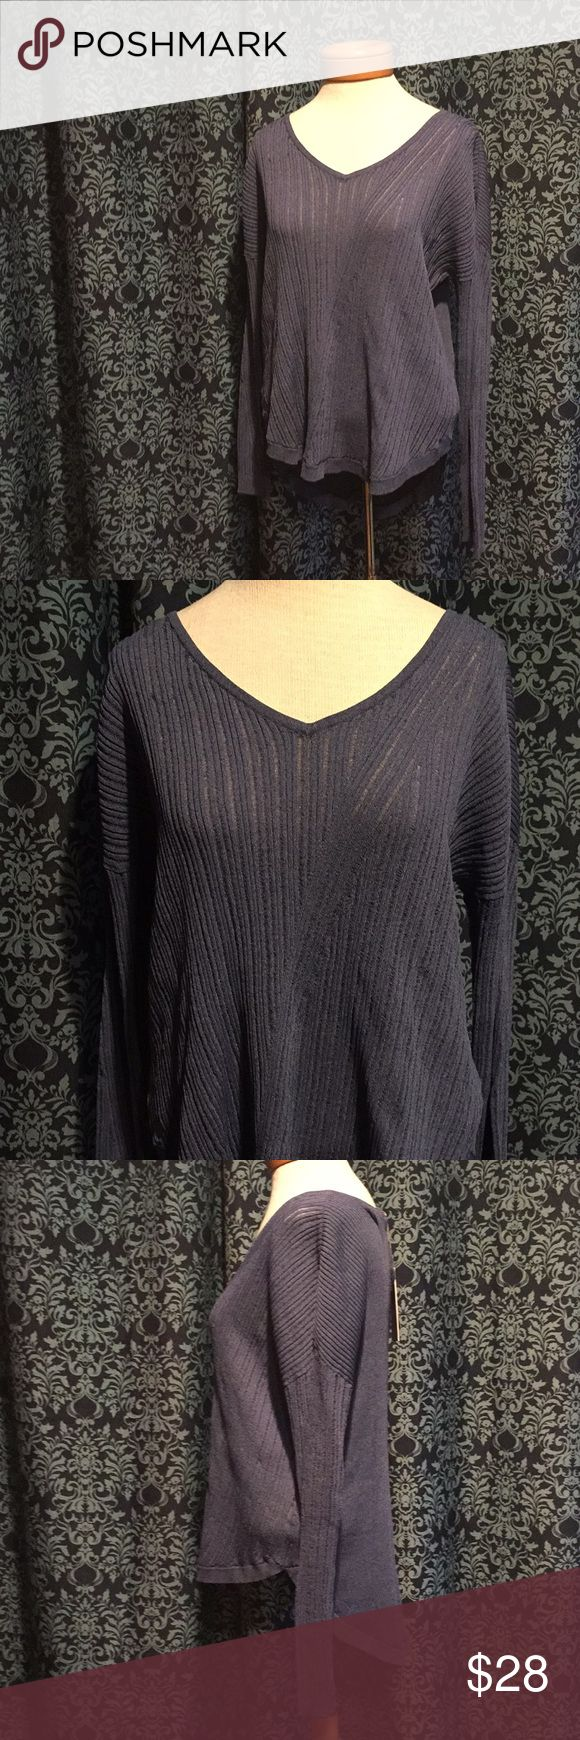 """NWT Jennifer Lopez High/Low Keyhole Top Classy up any outfit. Super cute keyhole accent in back. Long enough to cover your bum. Front has a crossover knit pattern that slims your torso. This is not necessarily a """"sweater"""", it's a lighter weight weave top and didn't know how to classify it. Jennifer Lopez Sweaters Crew & Scoop Necks"""